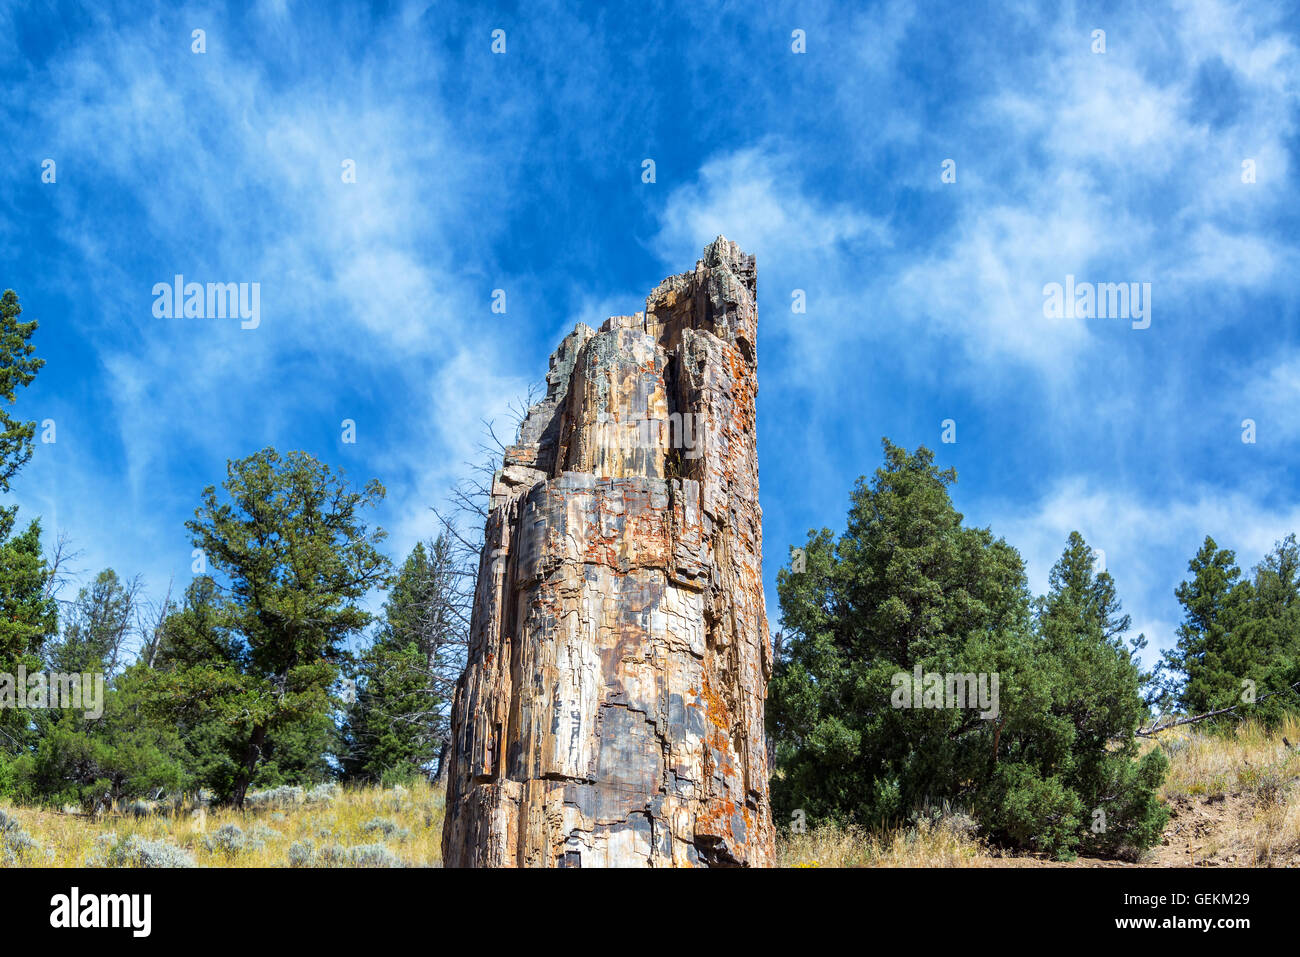 View of the famous petrified tree in Yellowstone National Park - Stock Image